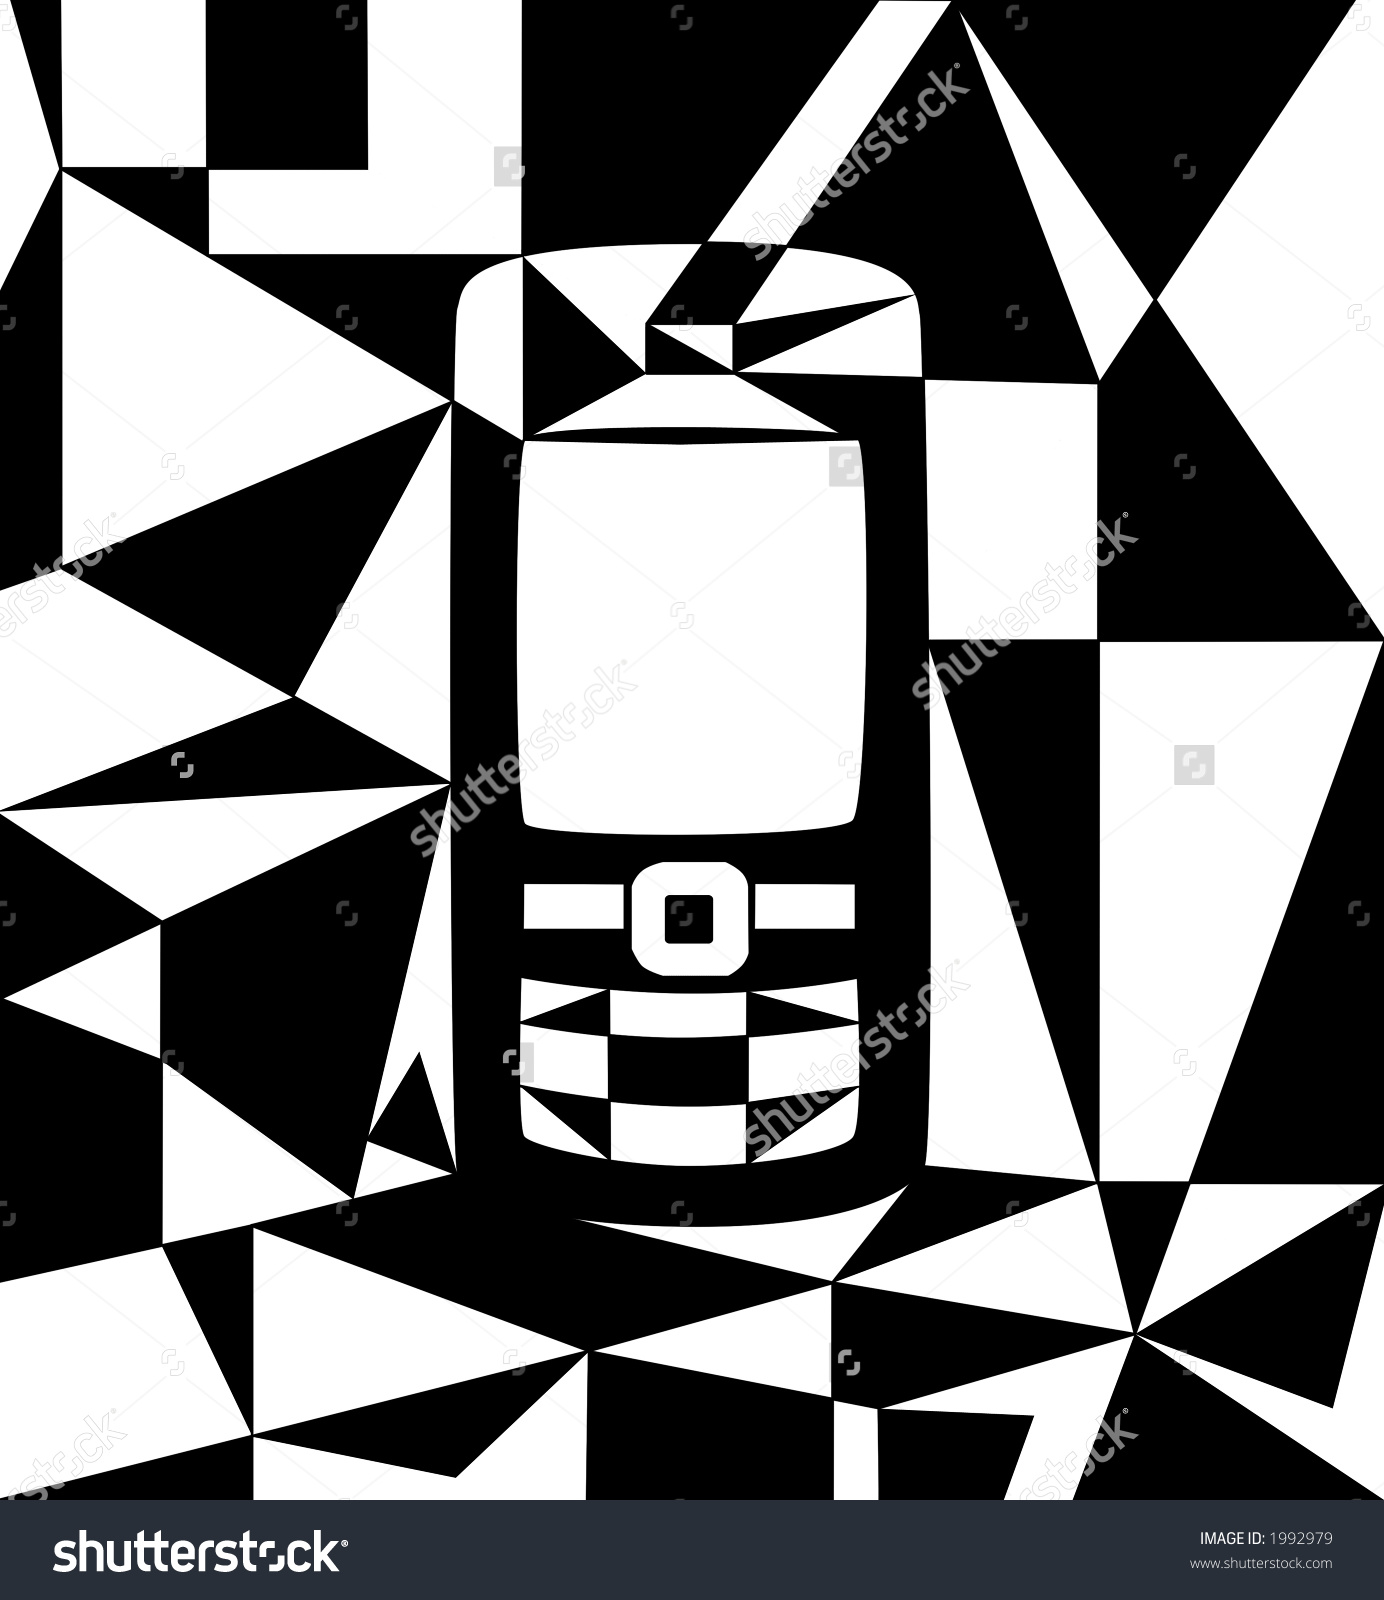 Abstract Phone Illustration Cubist Style Black Stock Illustration.